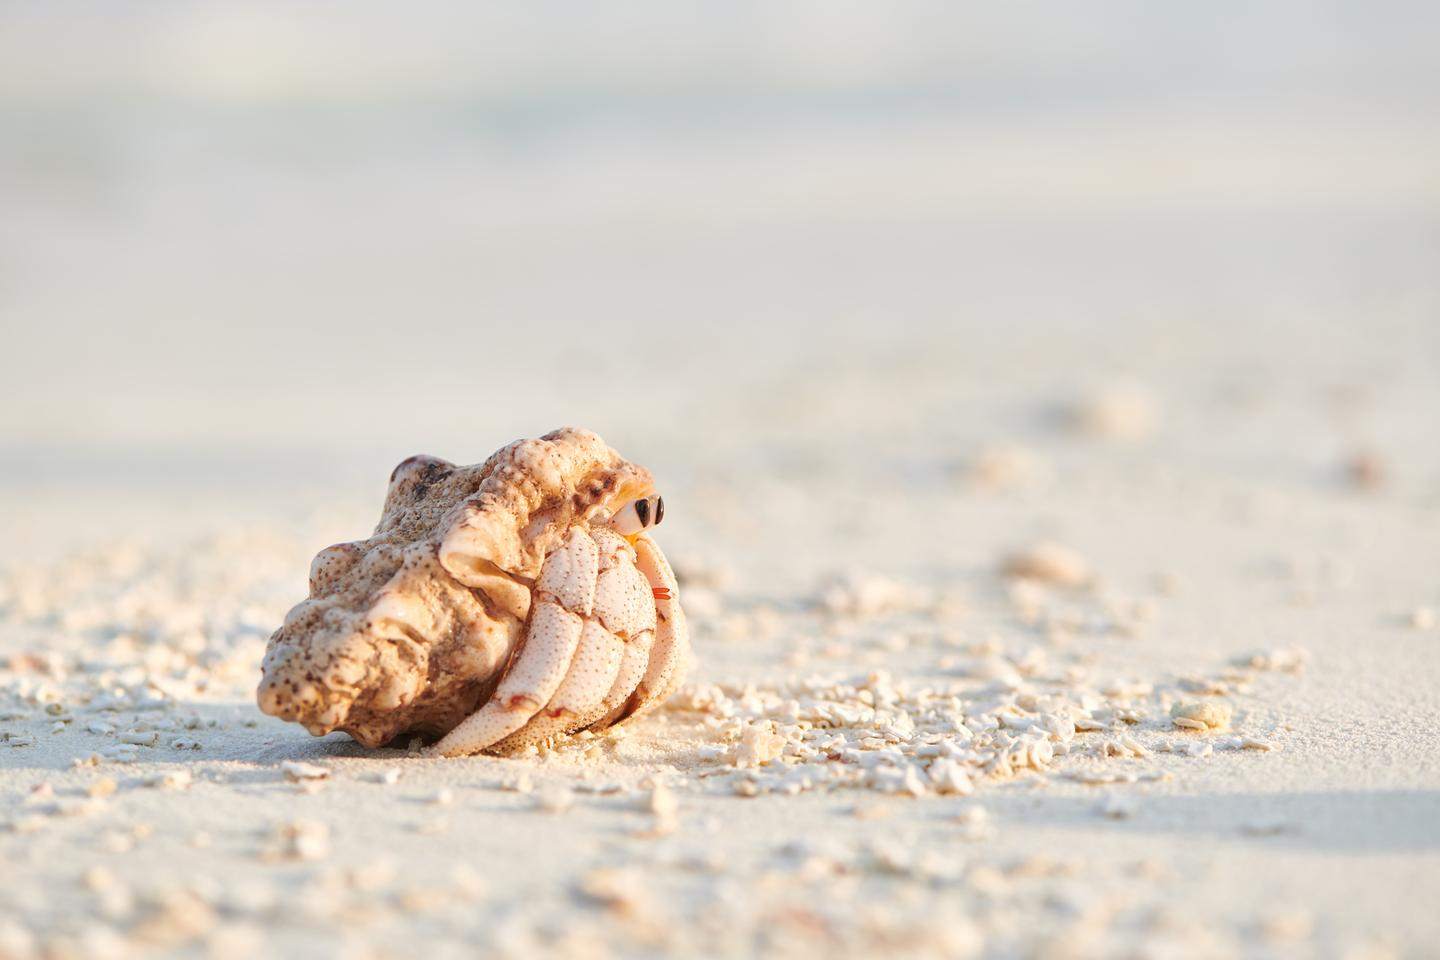 A study on the impact of plastic pollution on hermit crabs has found they may suffer impaired cognitive ability as a result